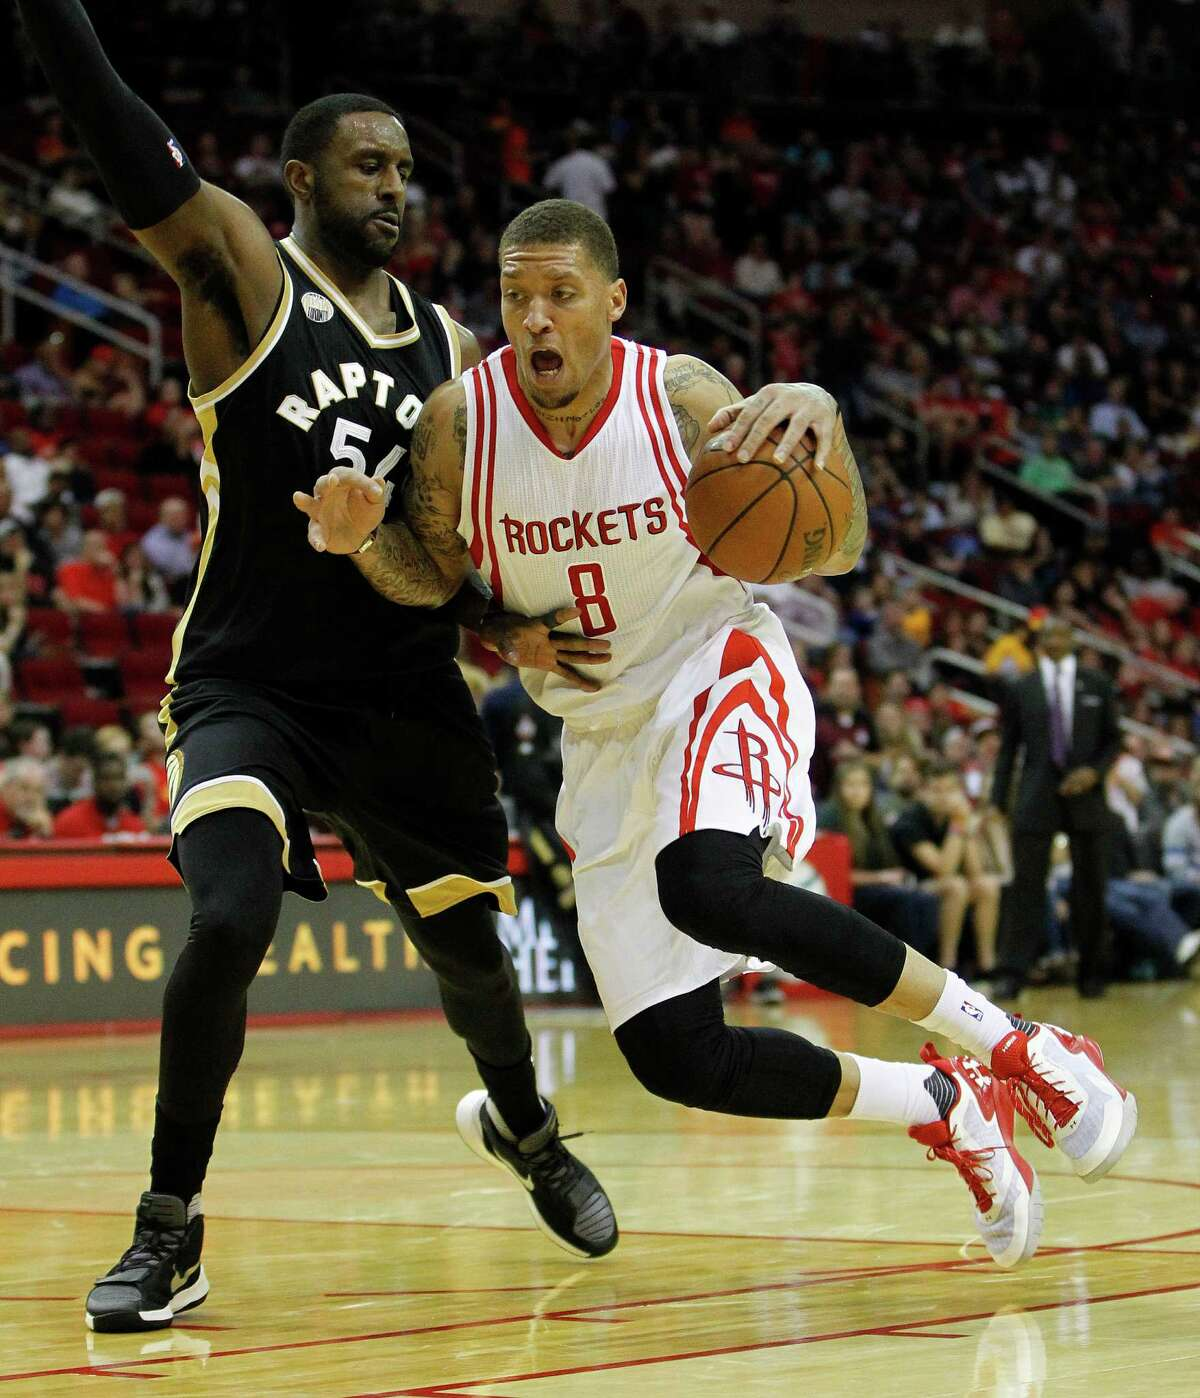 Rockets forward Michael Beasley, right, drives to the basket against Raptors forward Patrick Patterson. Beasley had 21 points, going 9-for-12.